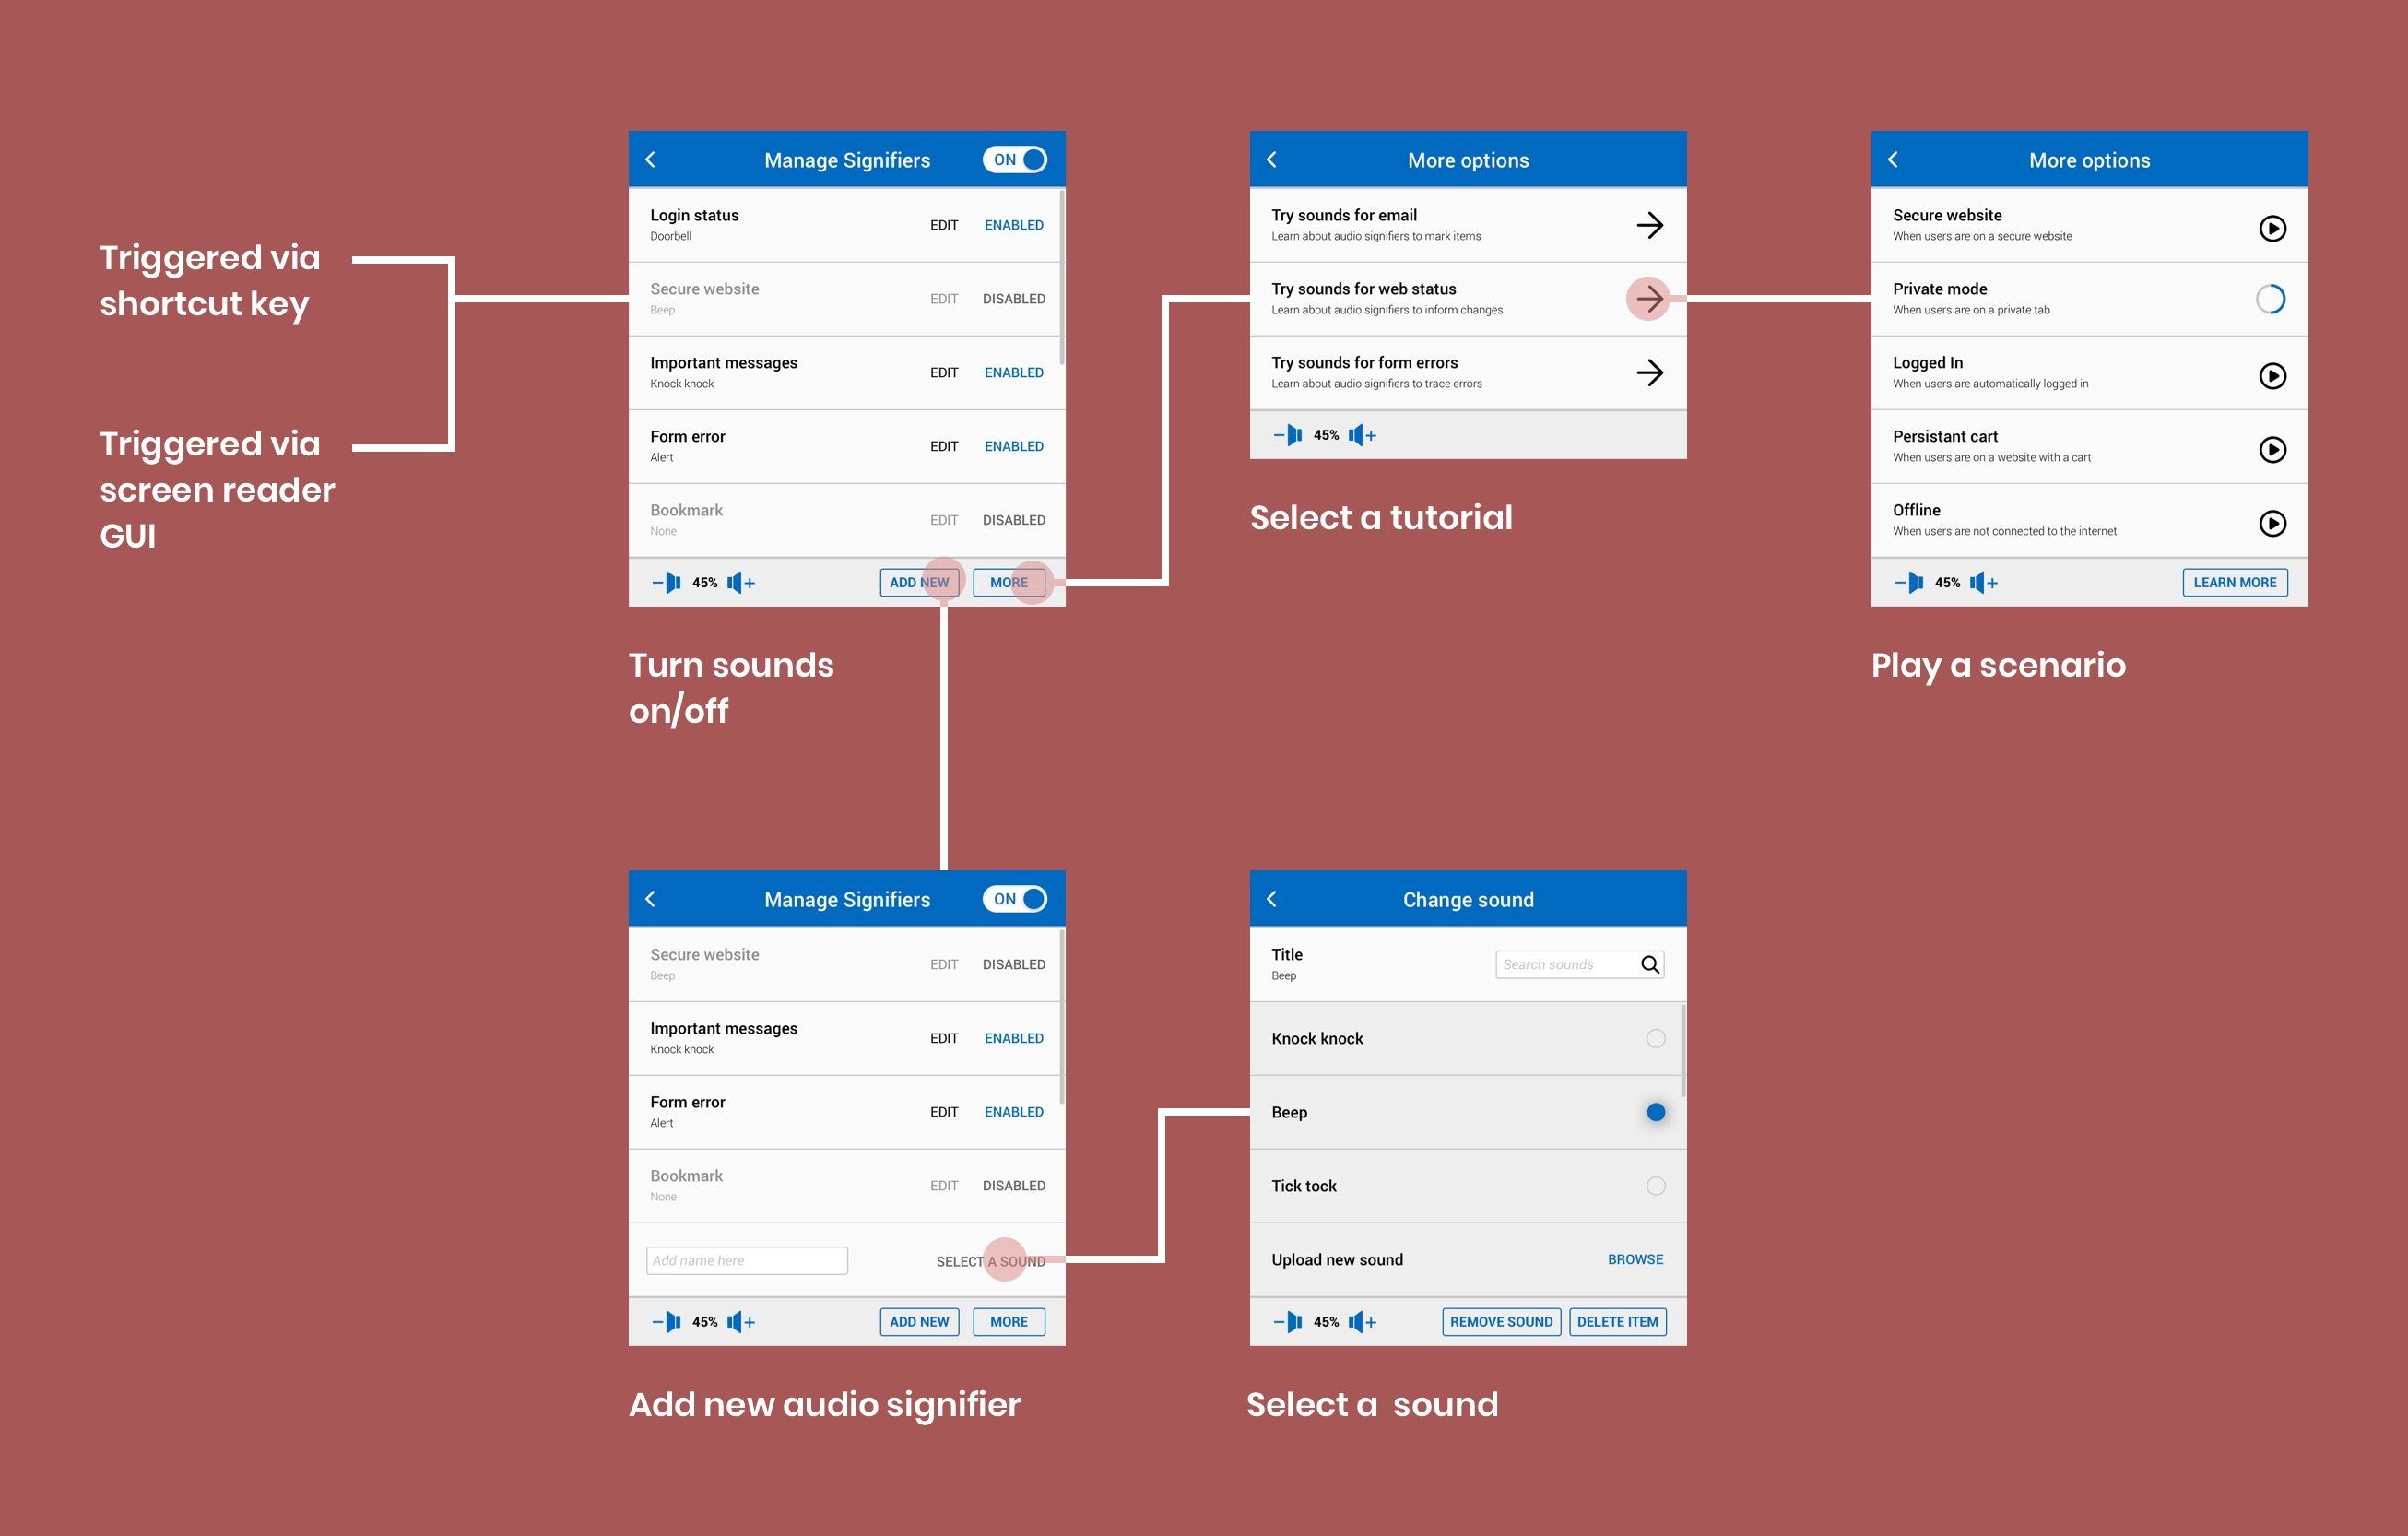 Image of the workflow for audio signifier settings where users can turn on/off sounds, play tutorials, and add new audio signifiers.